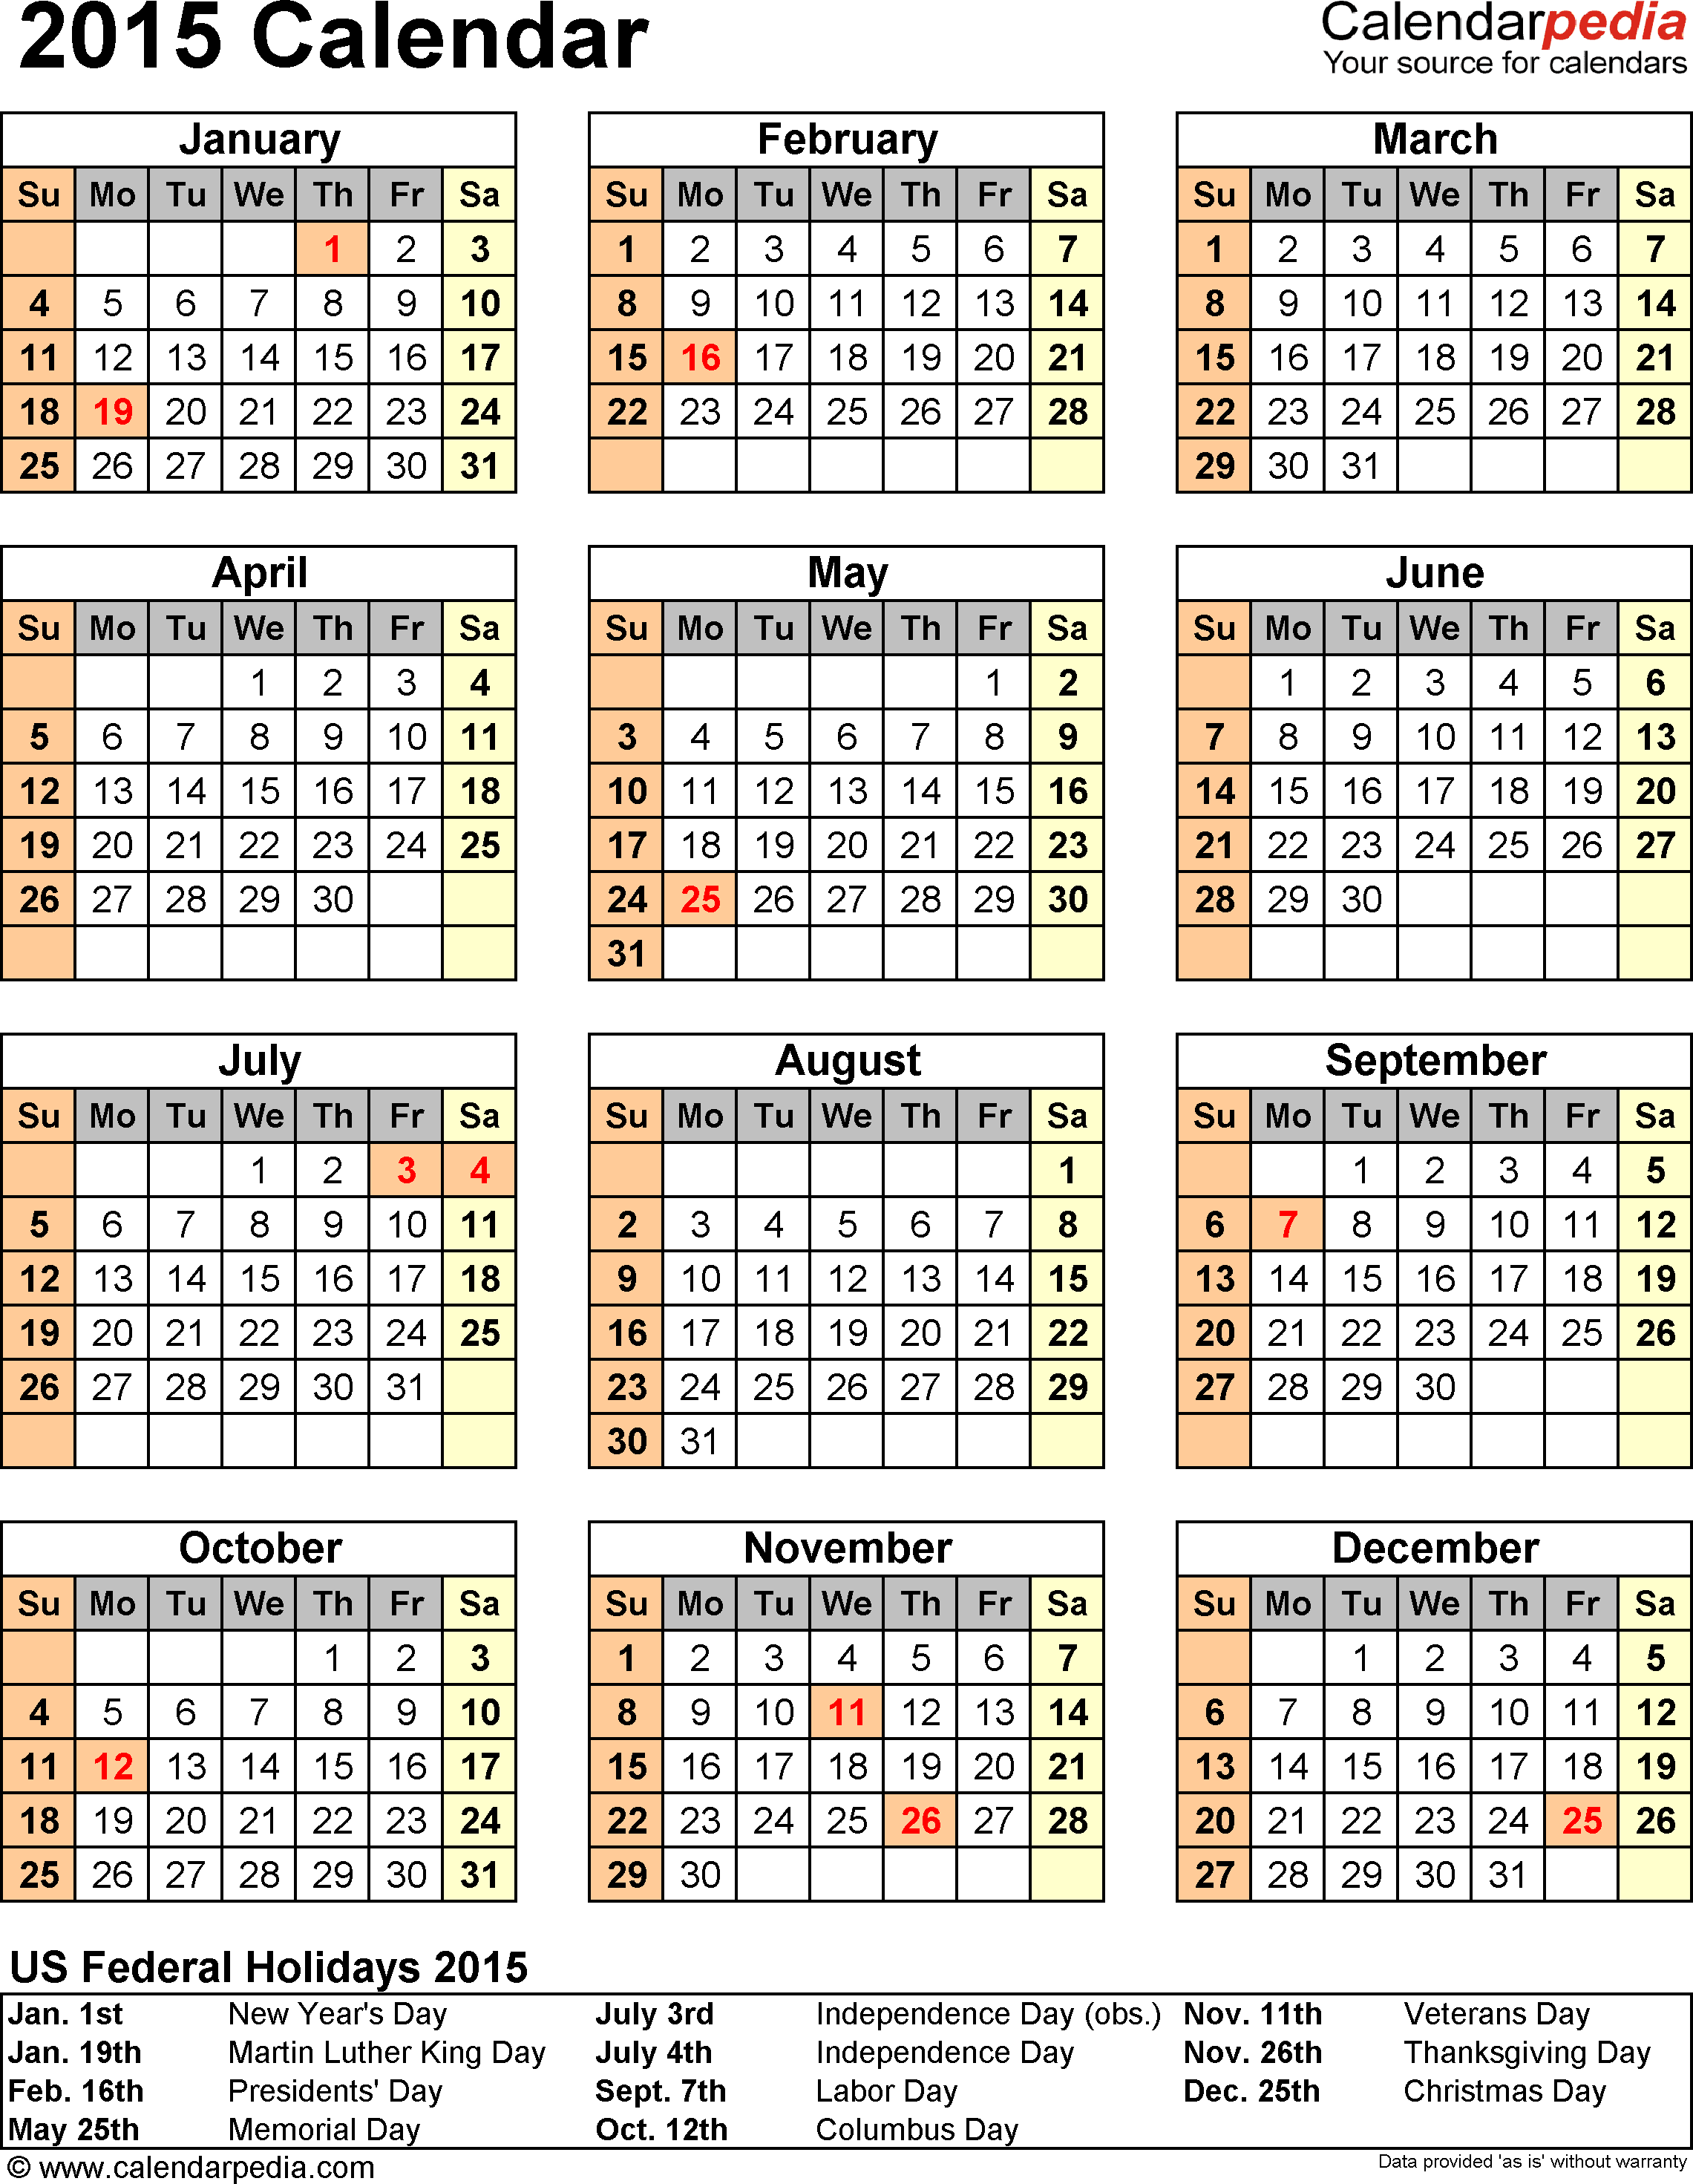 Template 14: 2015 Calendar for Excel, 1 page, portrait orientation